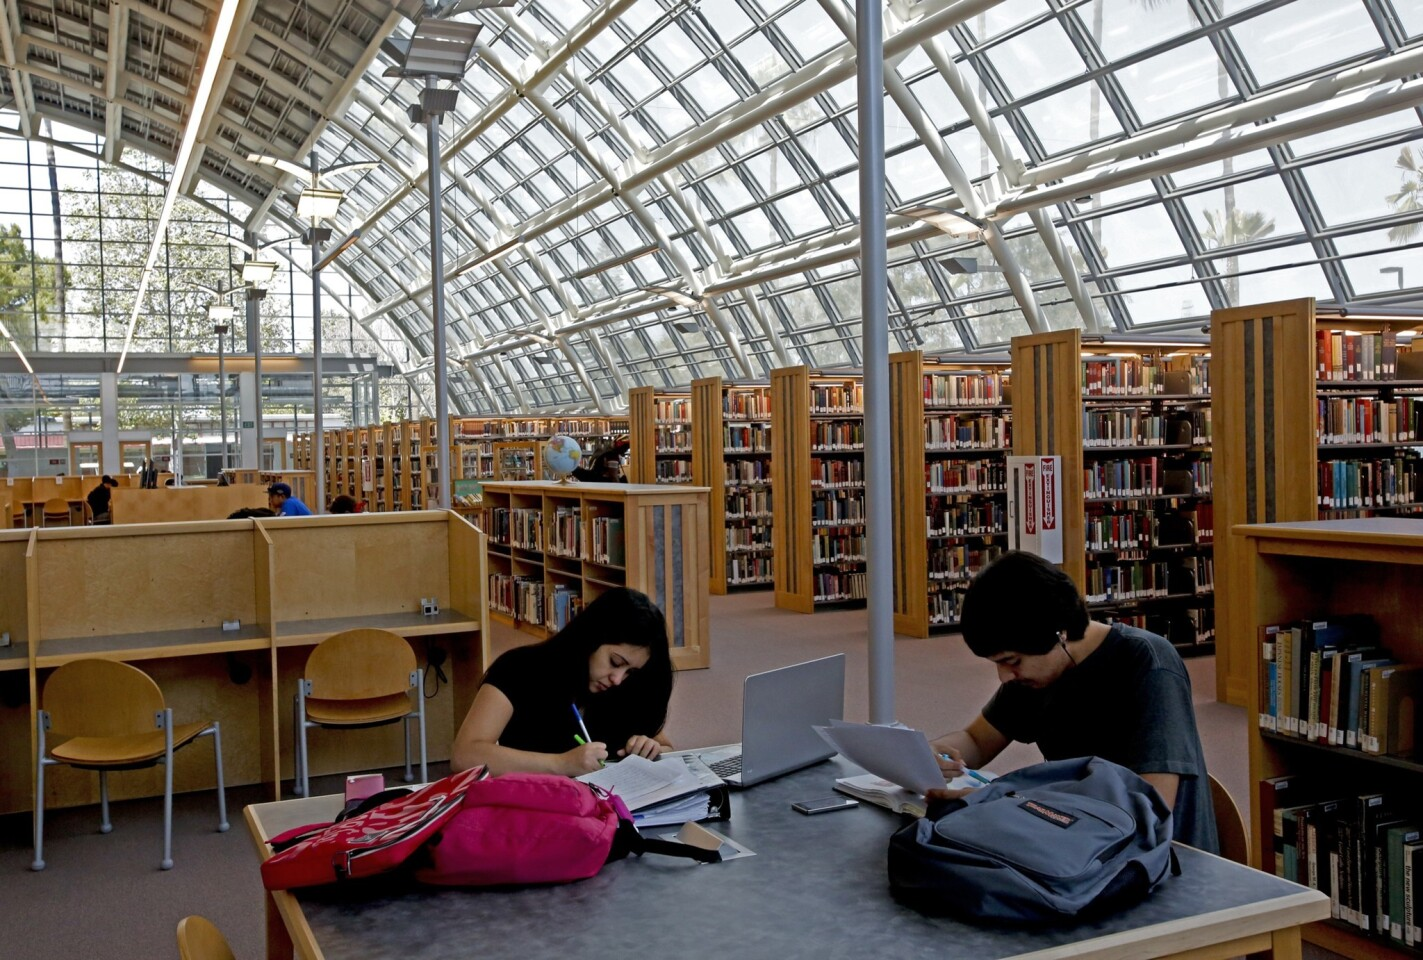 Nursing students Monica Lanco, 20, left, and Fernando Gomez, 22, study in the library before the ribbon-cutting ceremony Tuesday at El Camino College Compton Center. The state-of-the-art library opened last month after a seven-year delay.